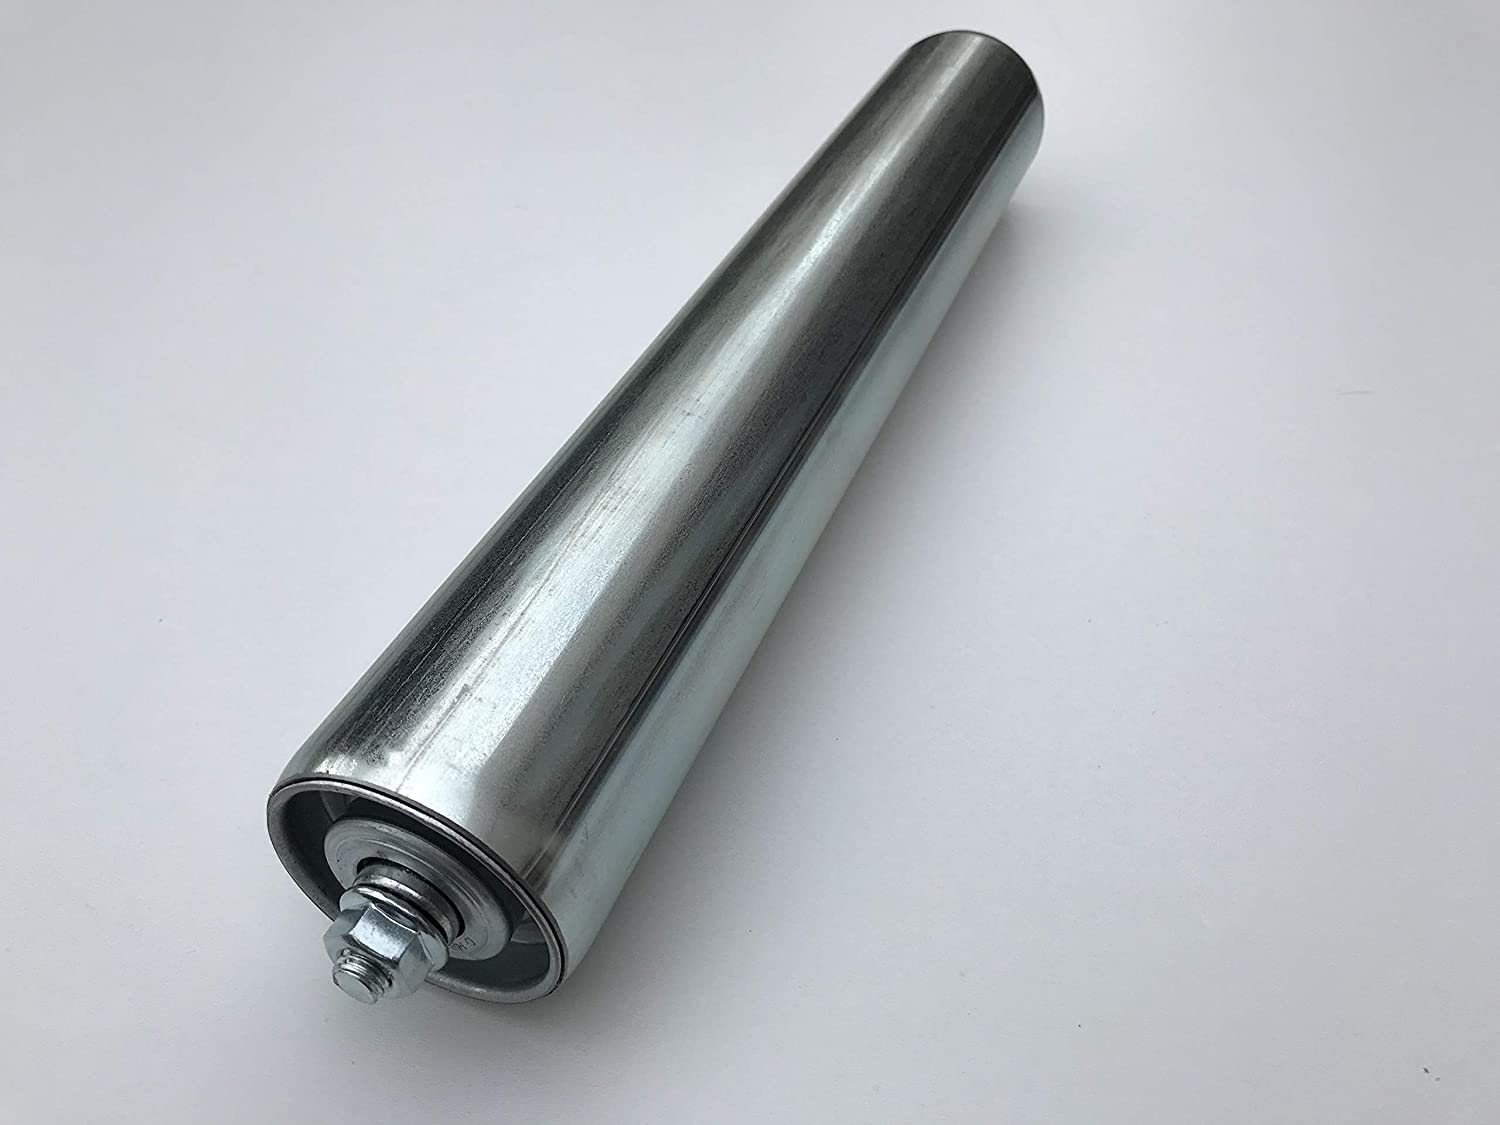 length: 100 mm conveyor roller rollers steel dia 50 mm with steel axle for gravity conveyor